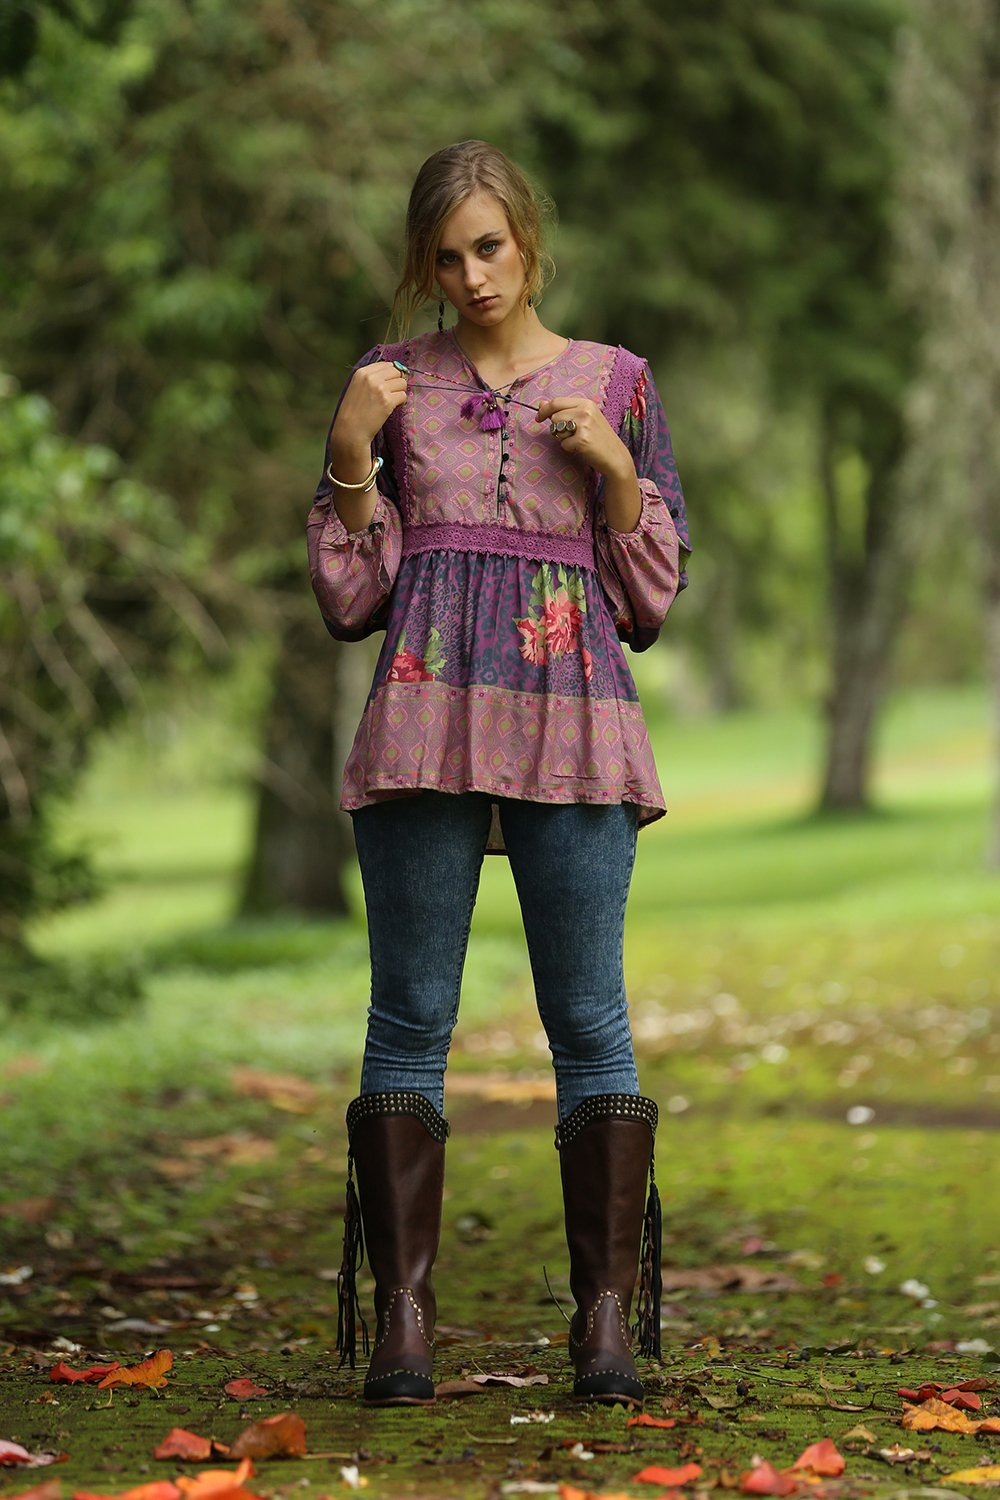 SAHARA_BOHO_BLOUSE_-_PURPLE_POTION_1_1000x